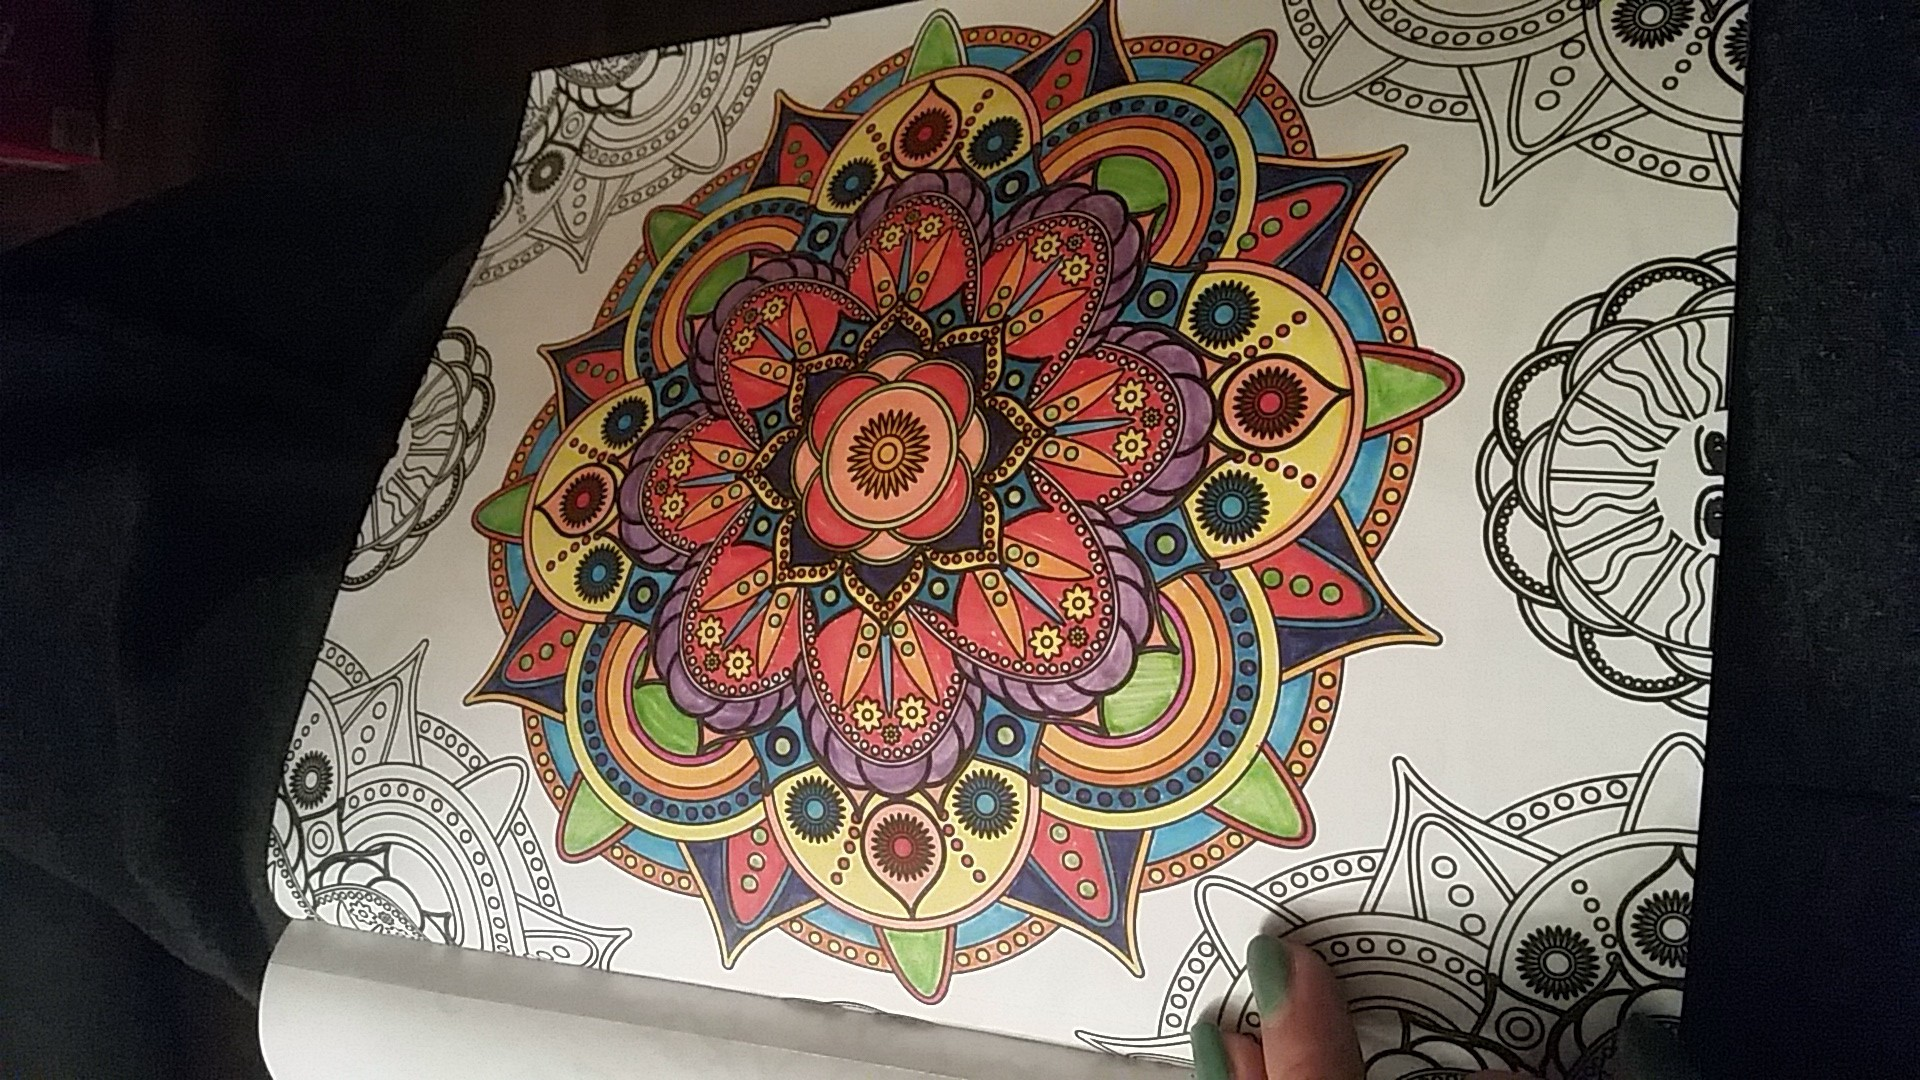 - 10 Perfect Reasons To Invest In An Adult Coloring Book Right Now - Live Free,  Live Healthy